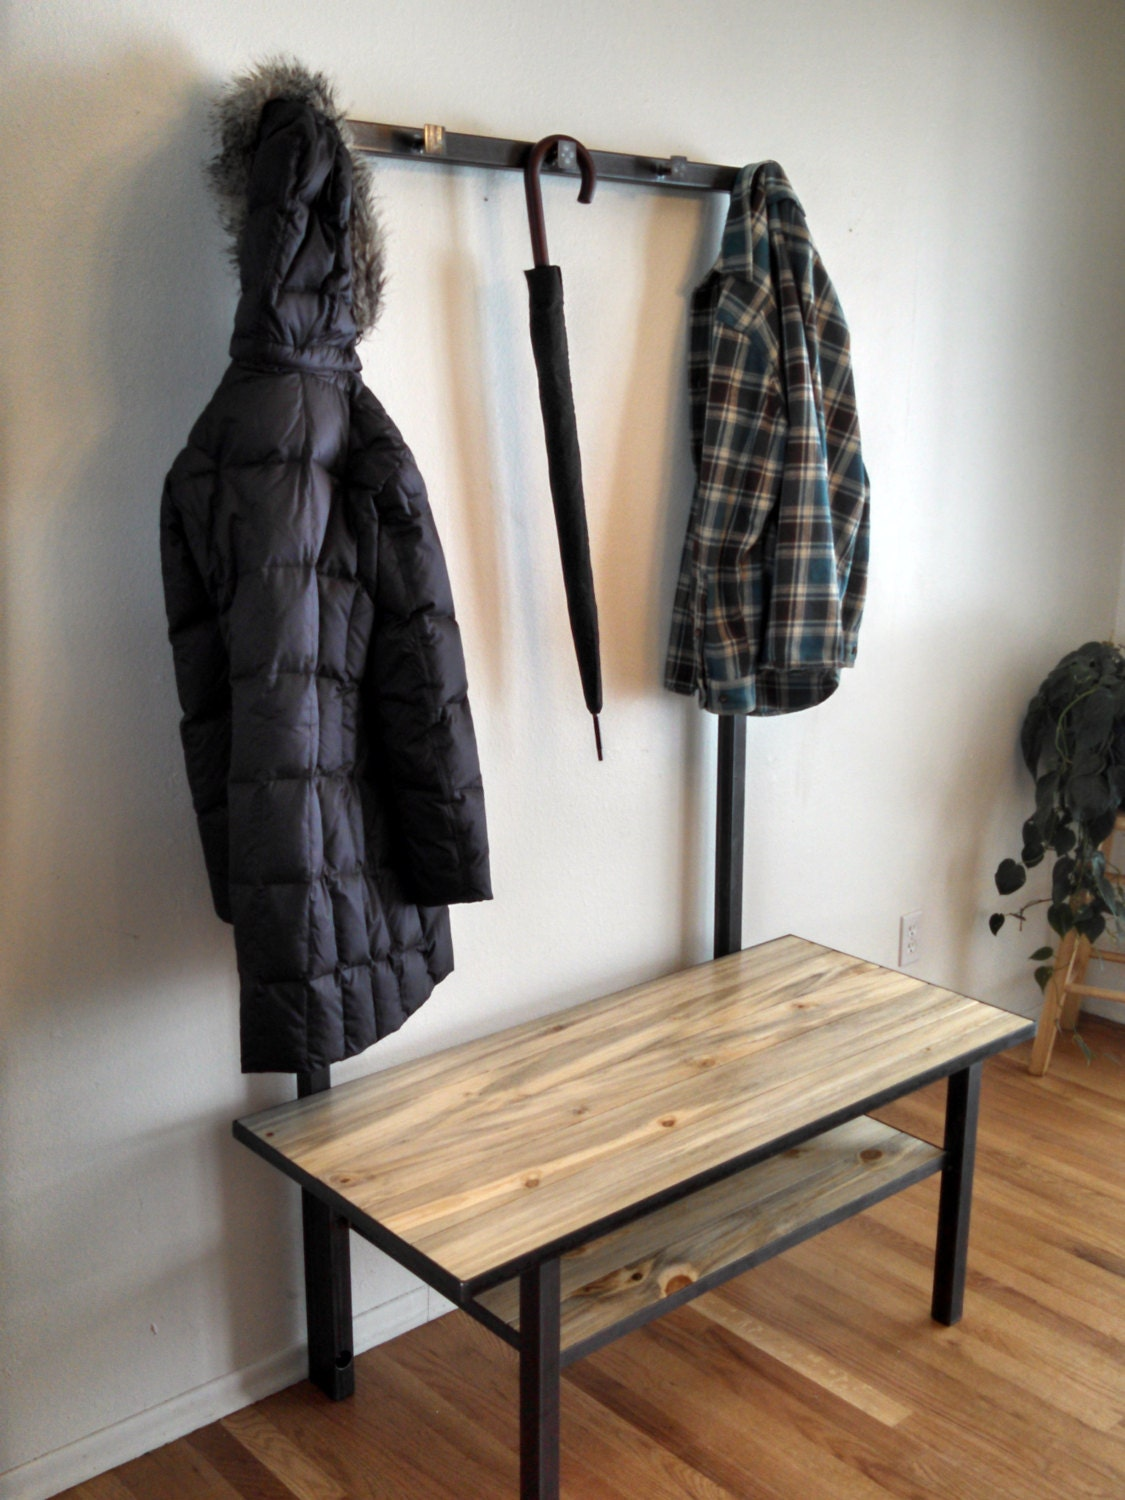 Metal Framed Entryway Bench With Coat Rack And Beetle Kill